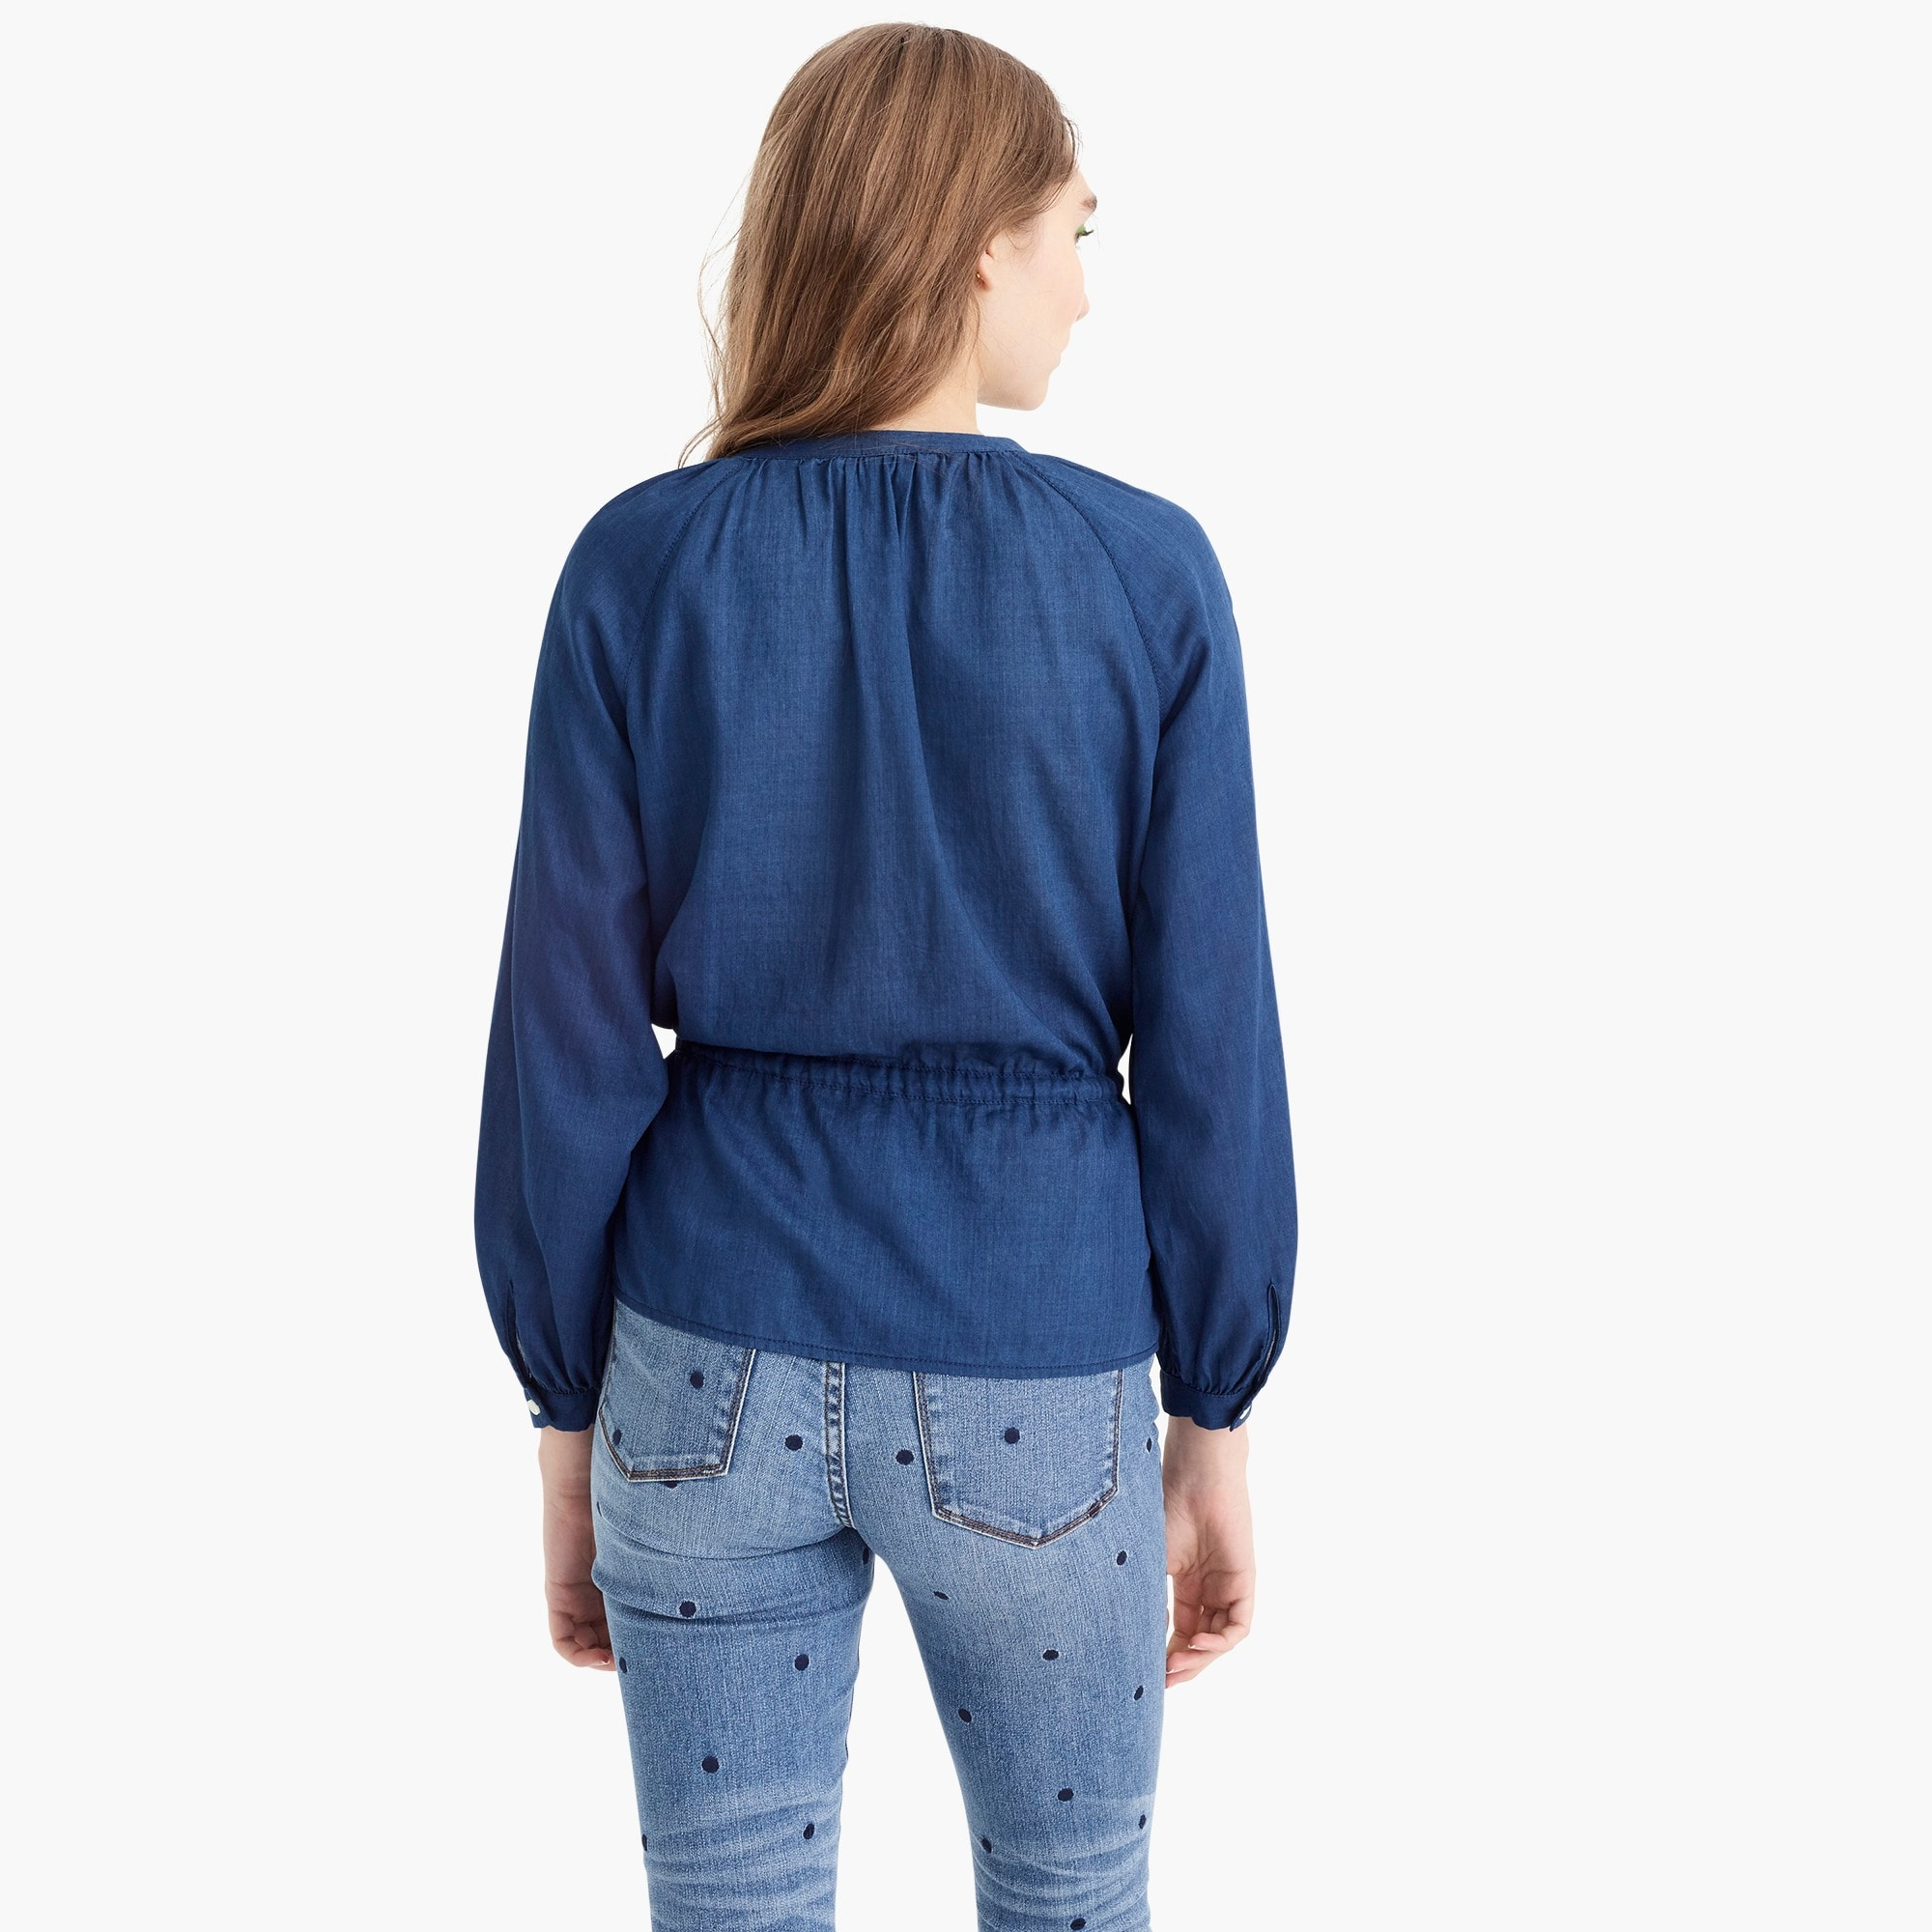 Image 5 for Tall tie-waist top in indigo gauze